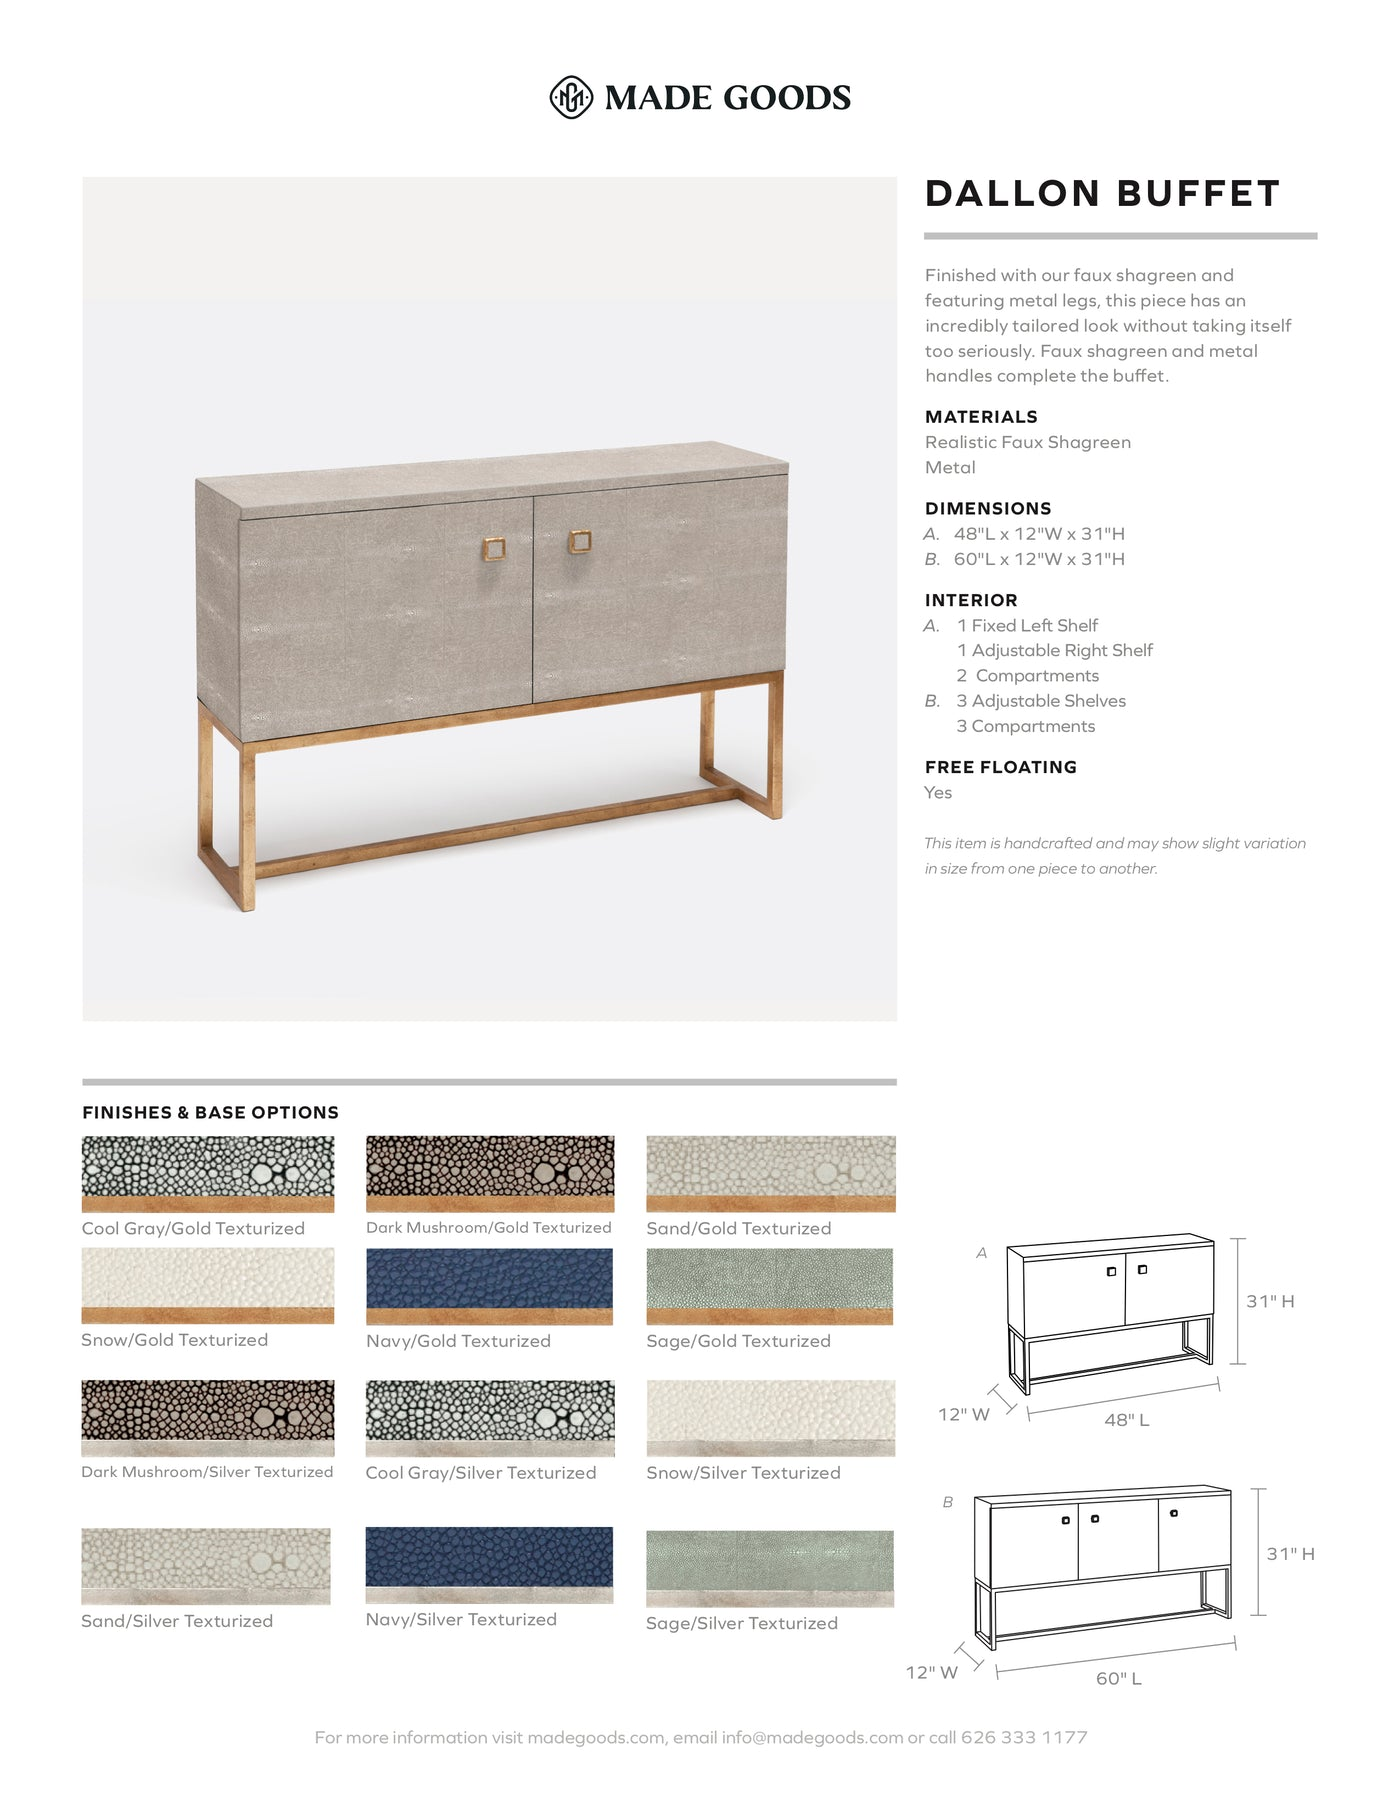 made goods dallon buffet  dresser console table dining room furniture Tear Sheet